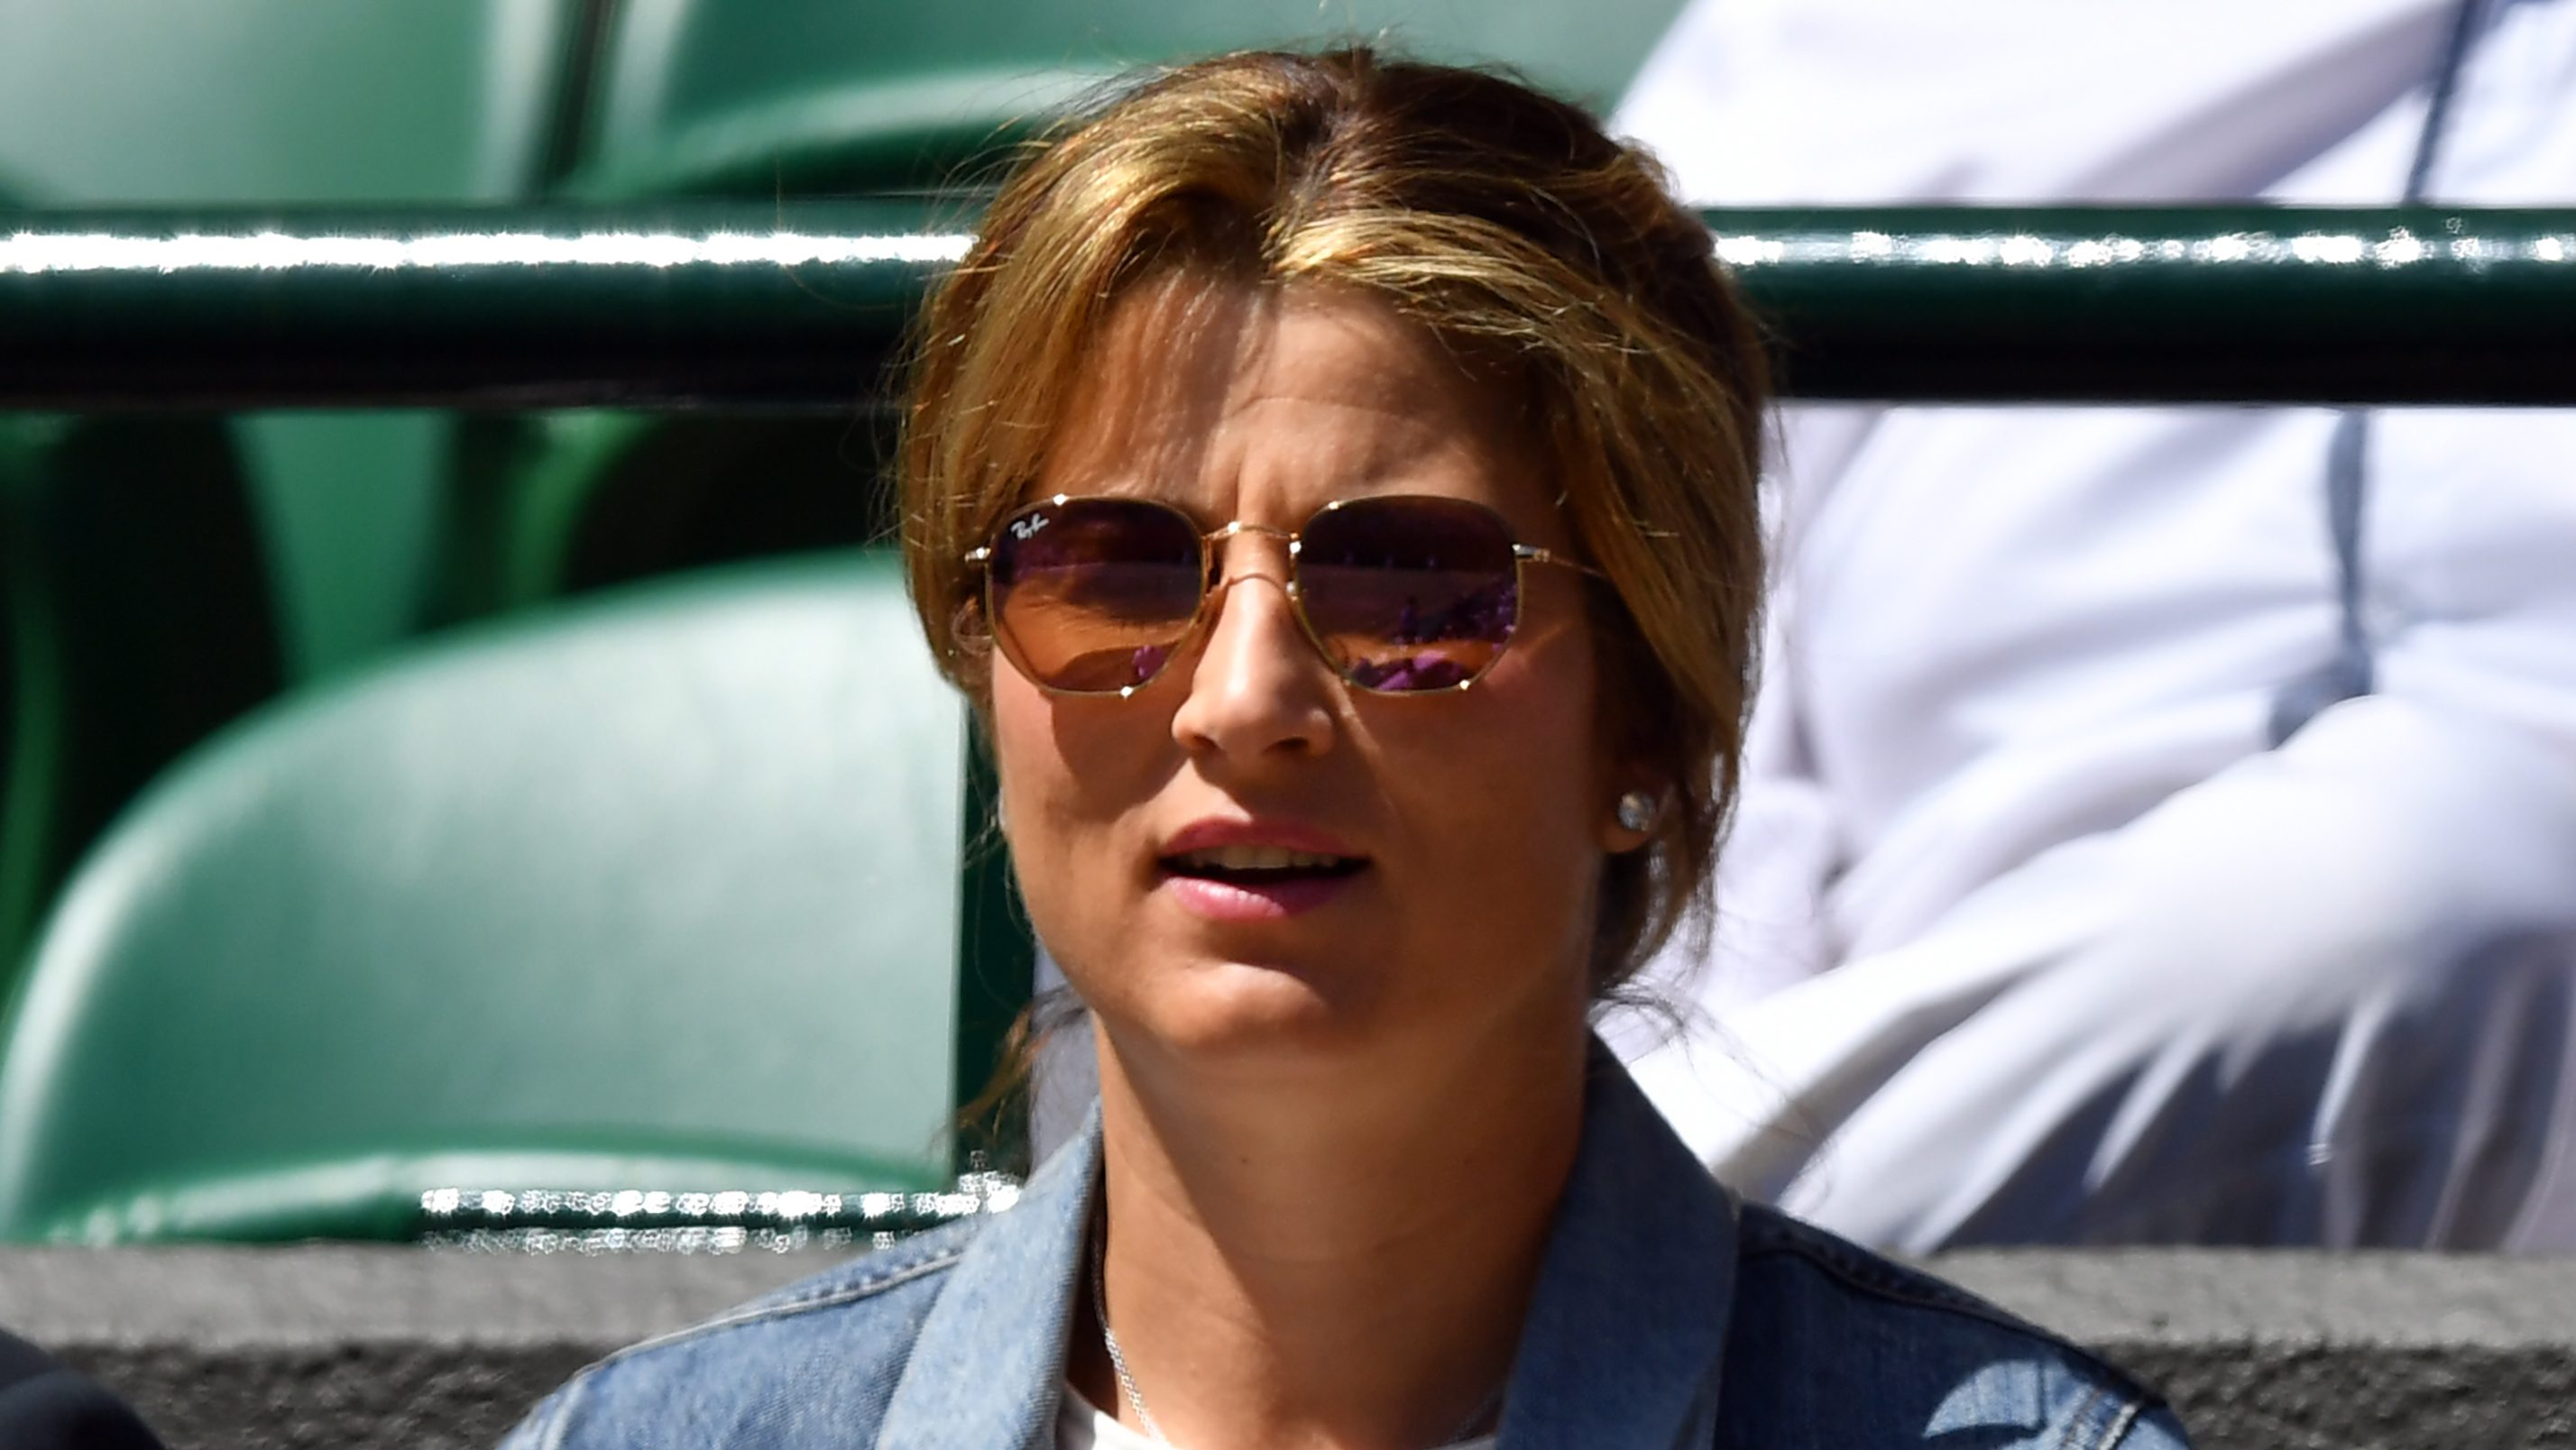 Mirka Federer Roger S Wife 5 Facts You Need To Know Heavy Com